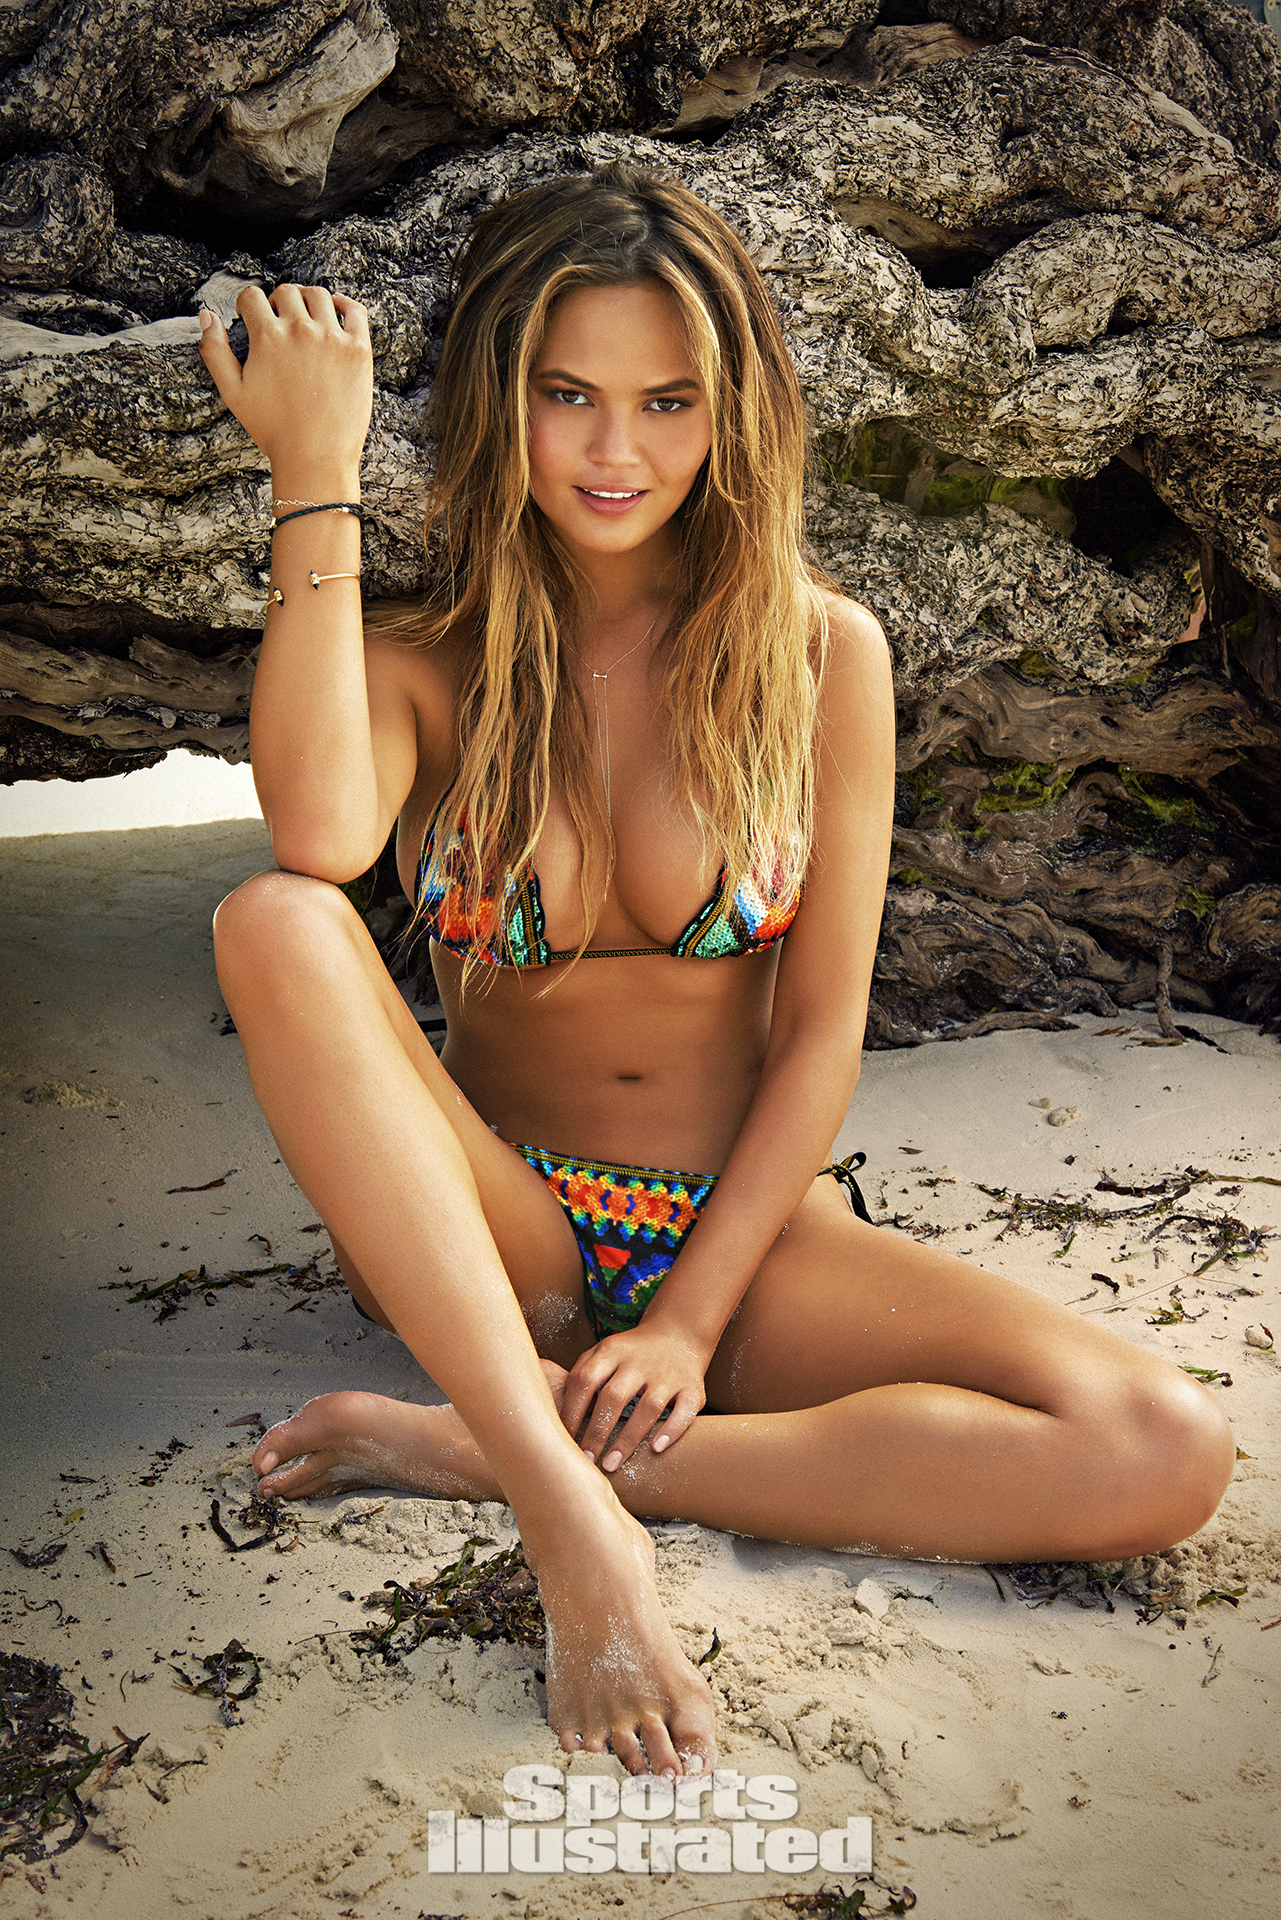 Chrissy Teigen was photographed by Ruven Afanador in Zanzibar. Swimsuit by Agua Bendita Swimwear.